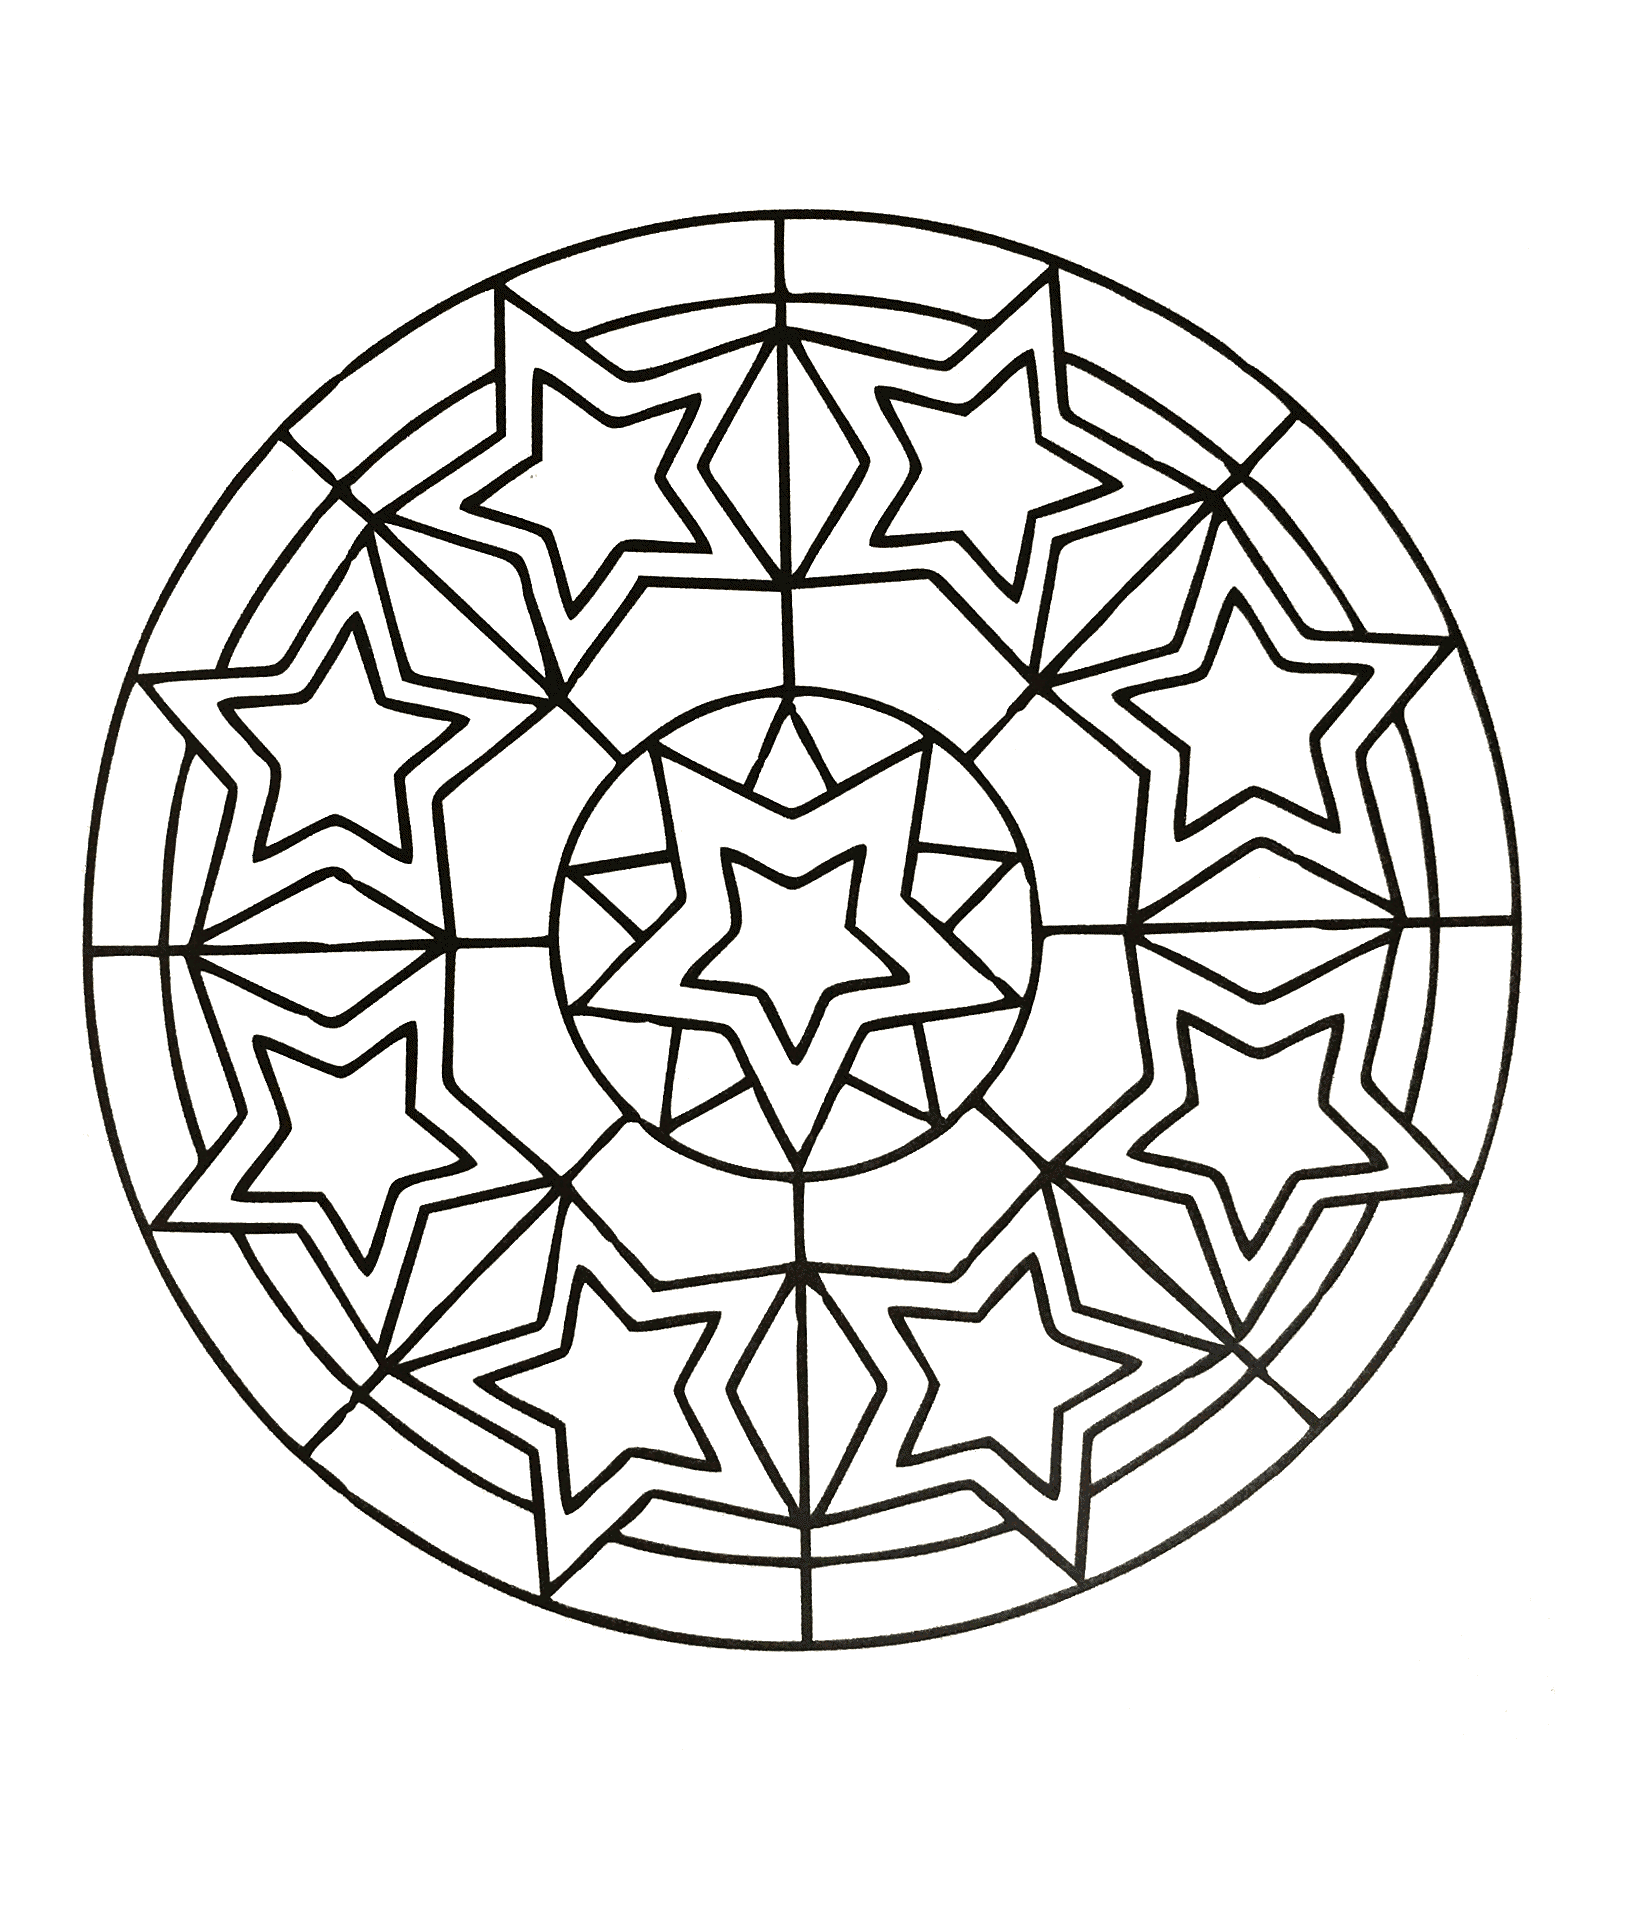 Simple mandala 78From the gallery : Kids Mandalas | Color: Mandalas ...